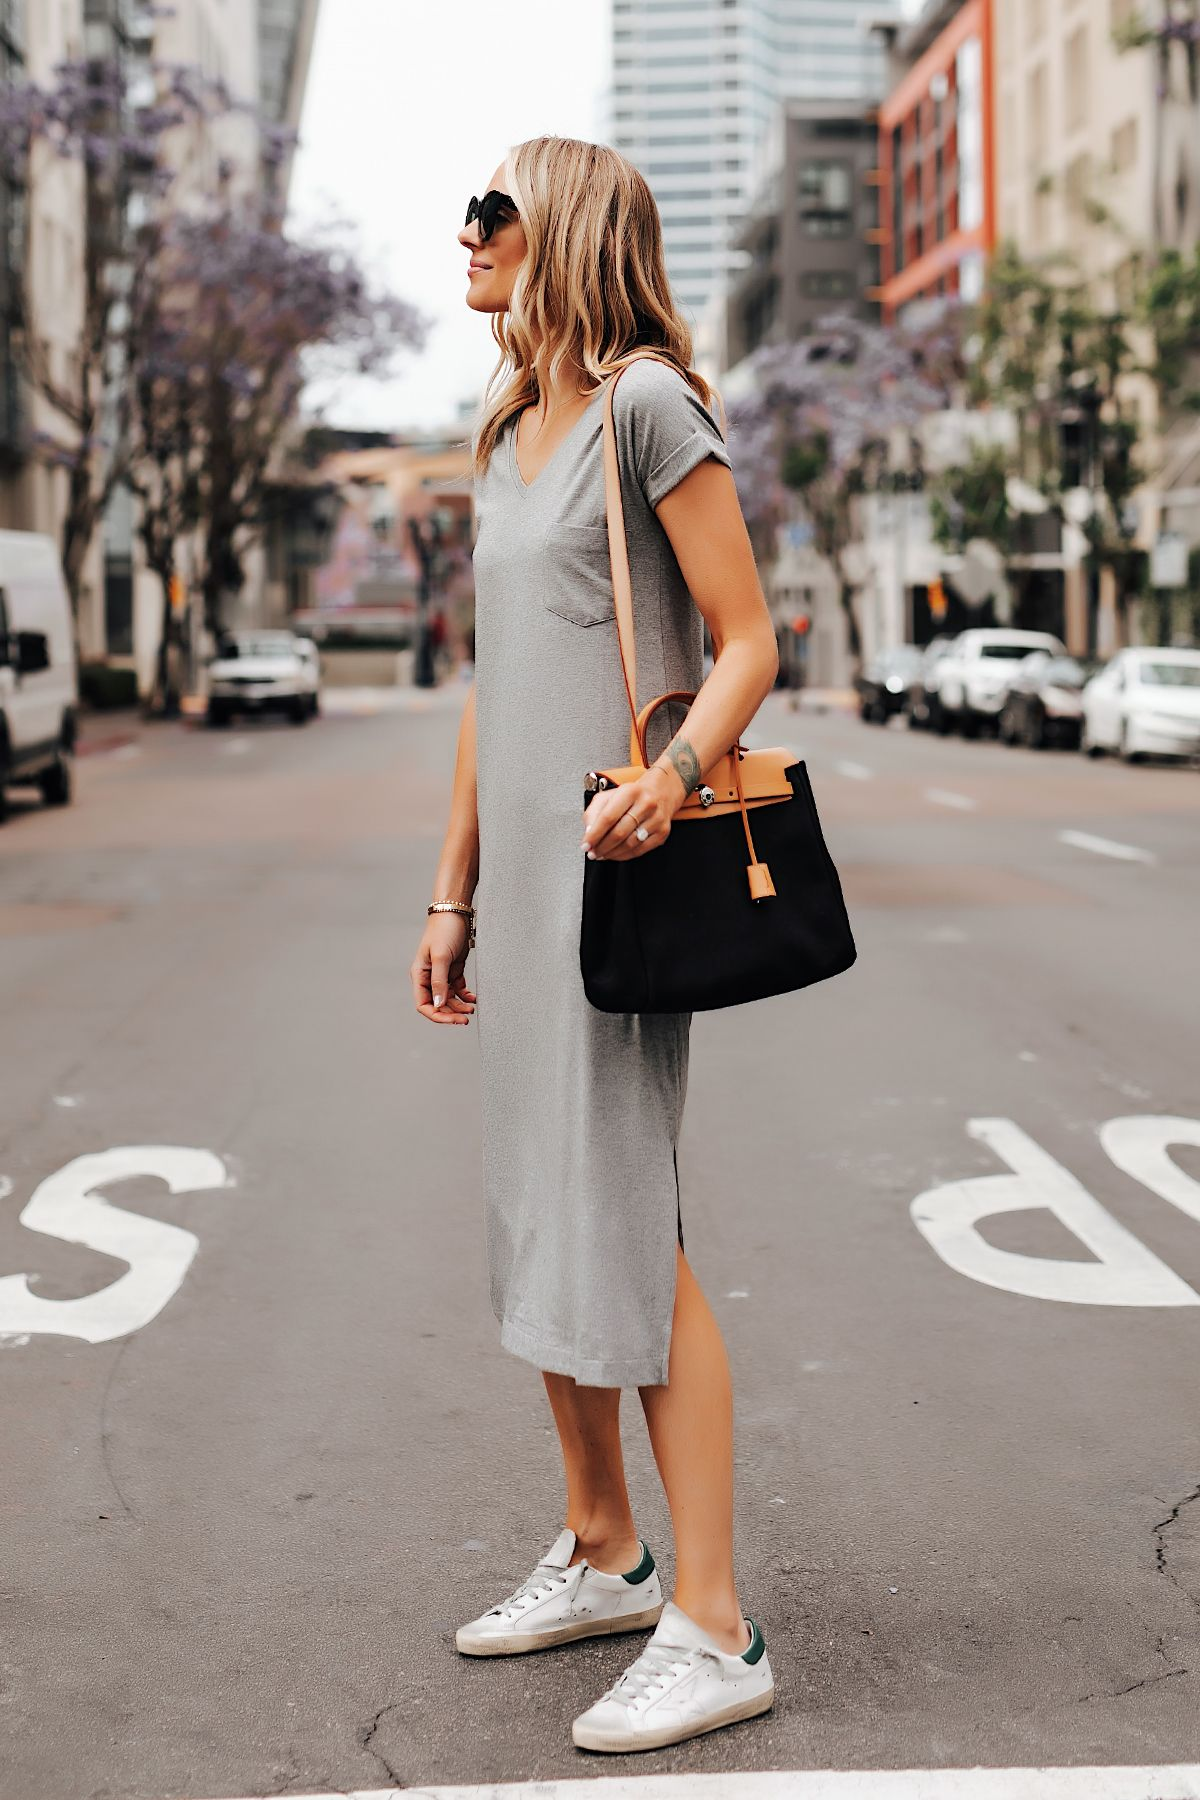 Fashion Jackson Effortless Way To Style A T Shirt Dress This Summer Dress And Sneakers Outfit Fashion Jackson Grey T Shirt Dress [ 1800 x 1200 Pixel ]